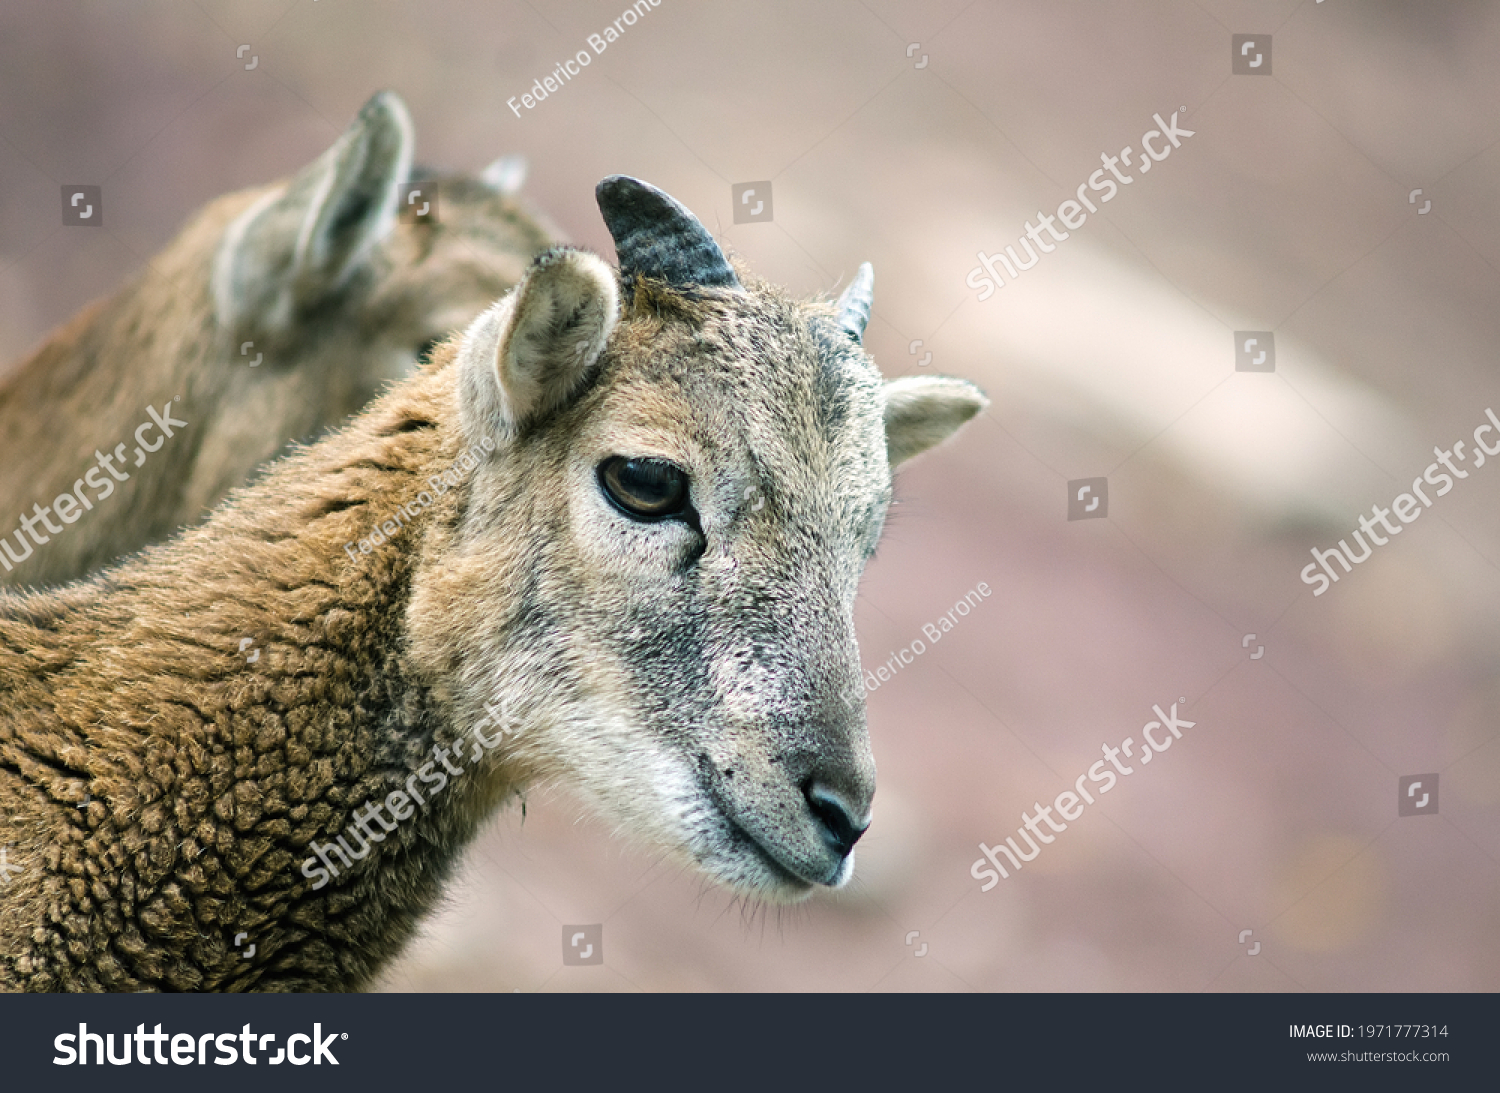 stock-photo-close-up-of-a-mouflon-in-the